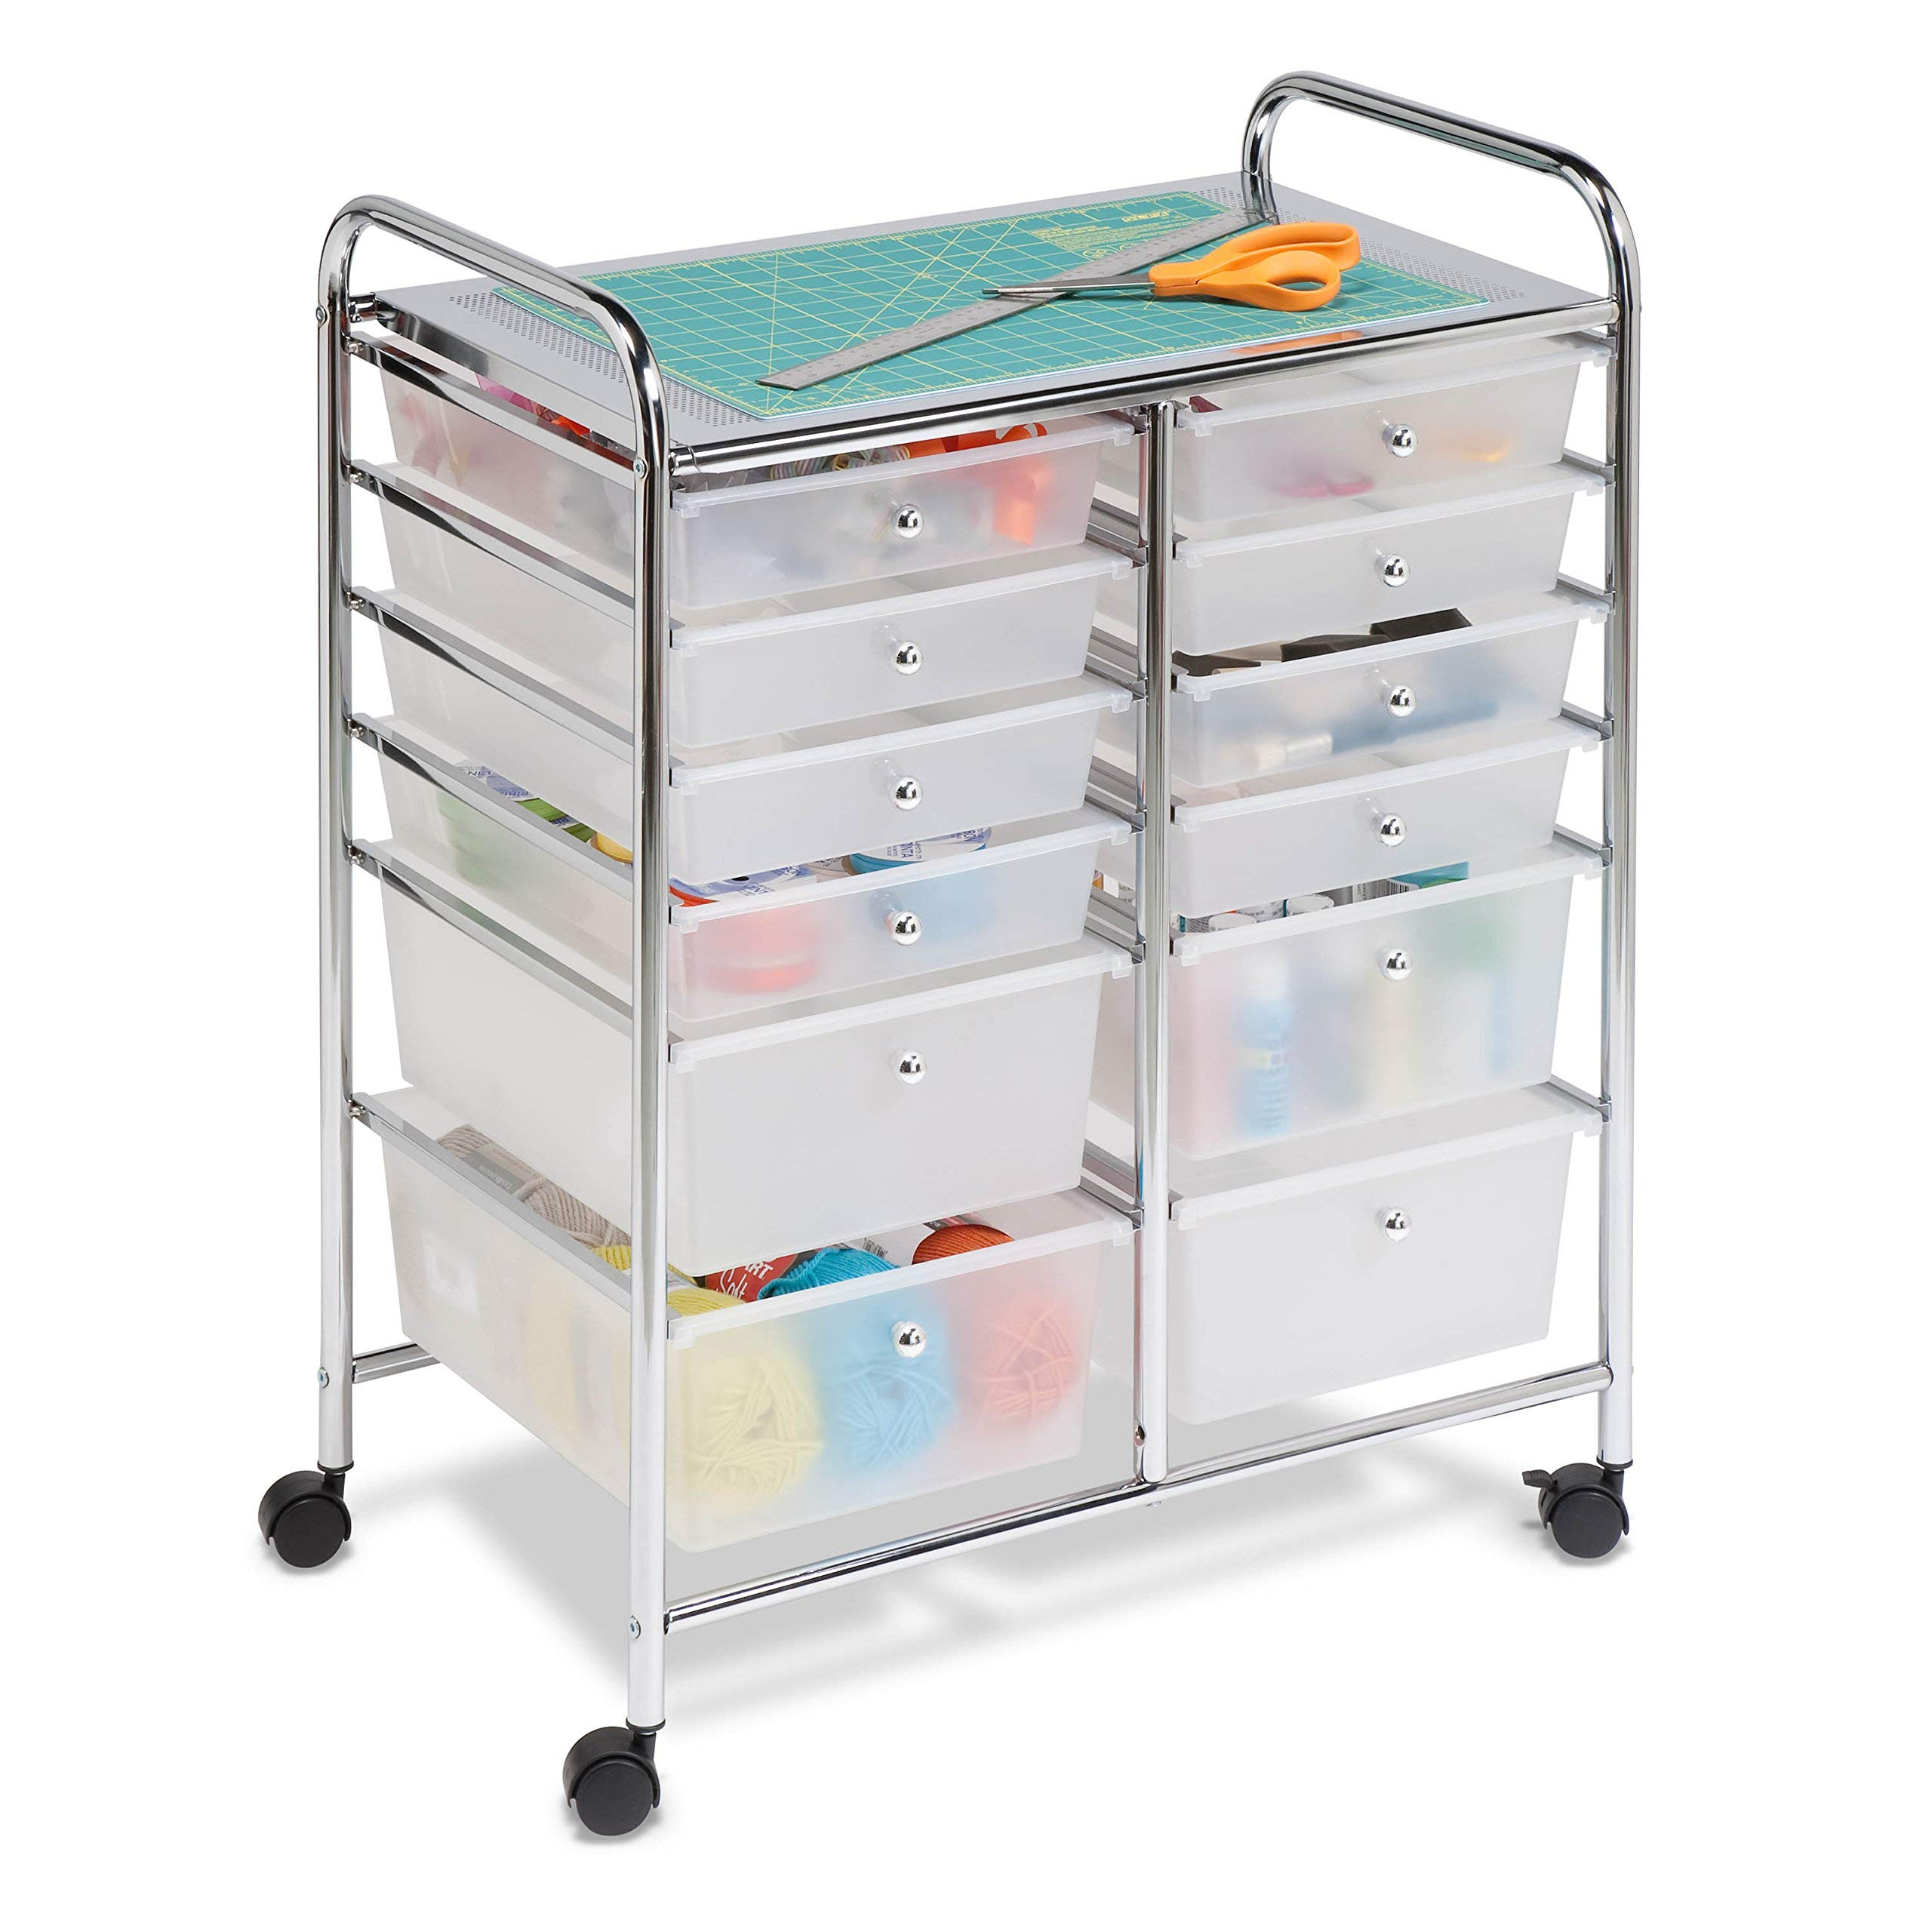 Honey-Can-Do Rolling Storage Cart and Organizer with 12 Plastic Drawers (Renewed)